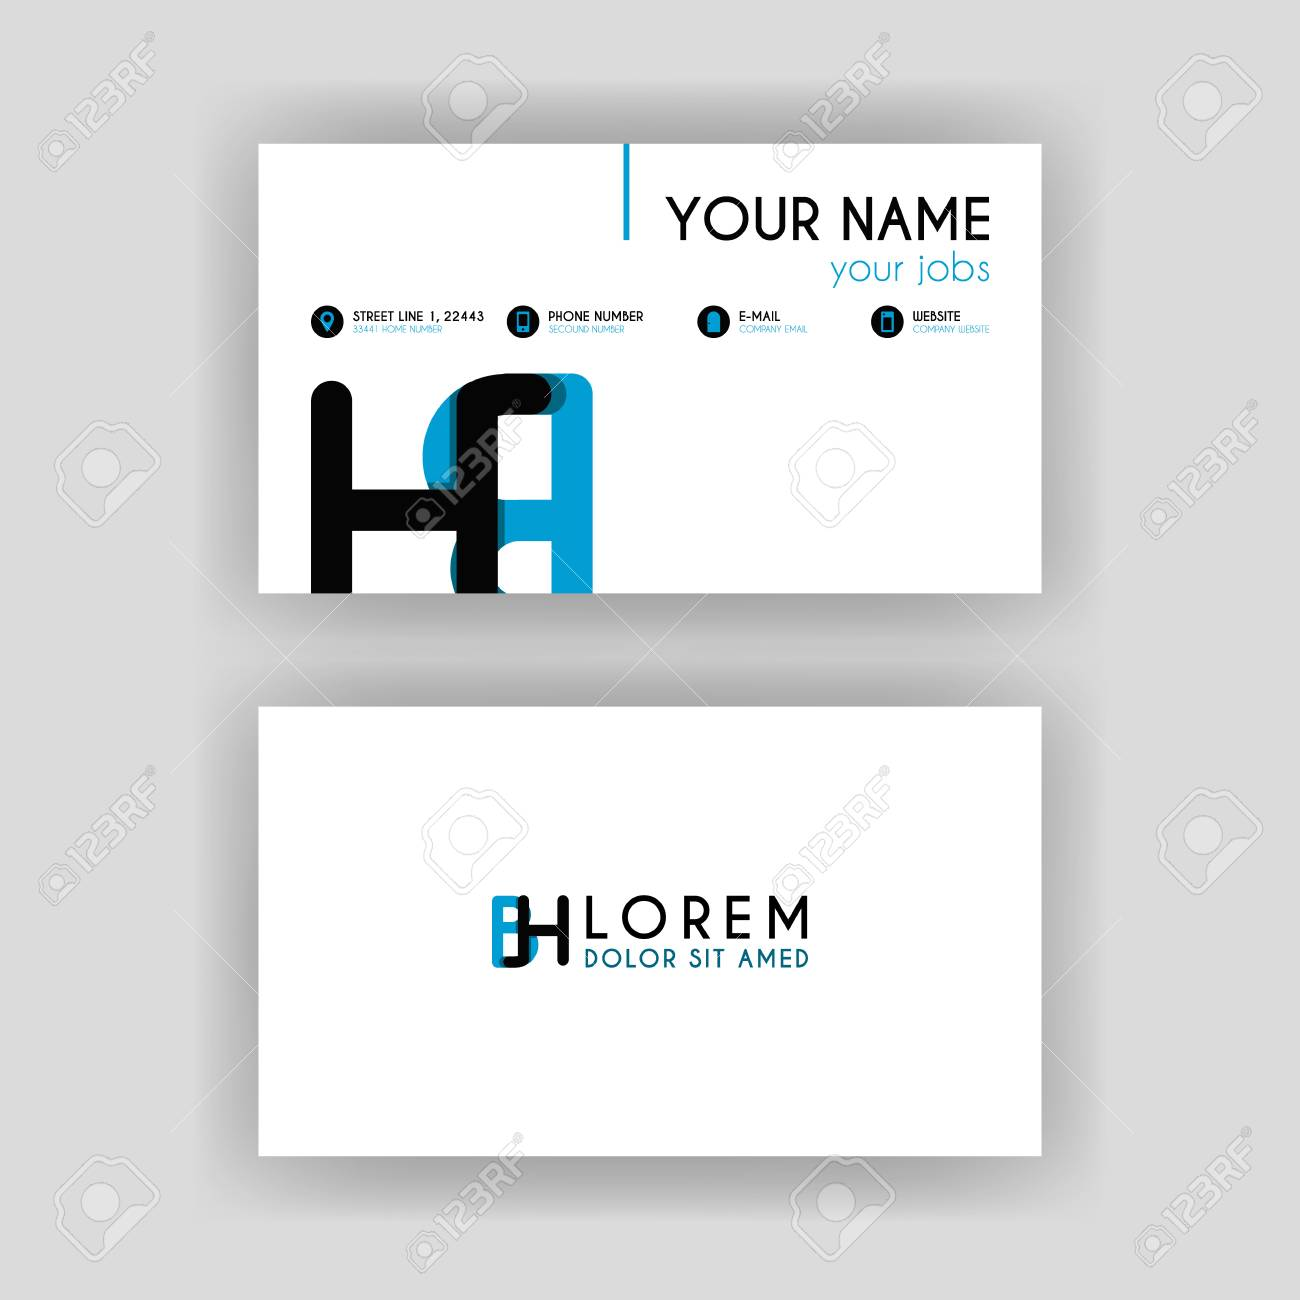 Simple Business Card With Initial Letter Bh Rounded Edges Royalty